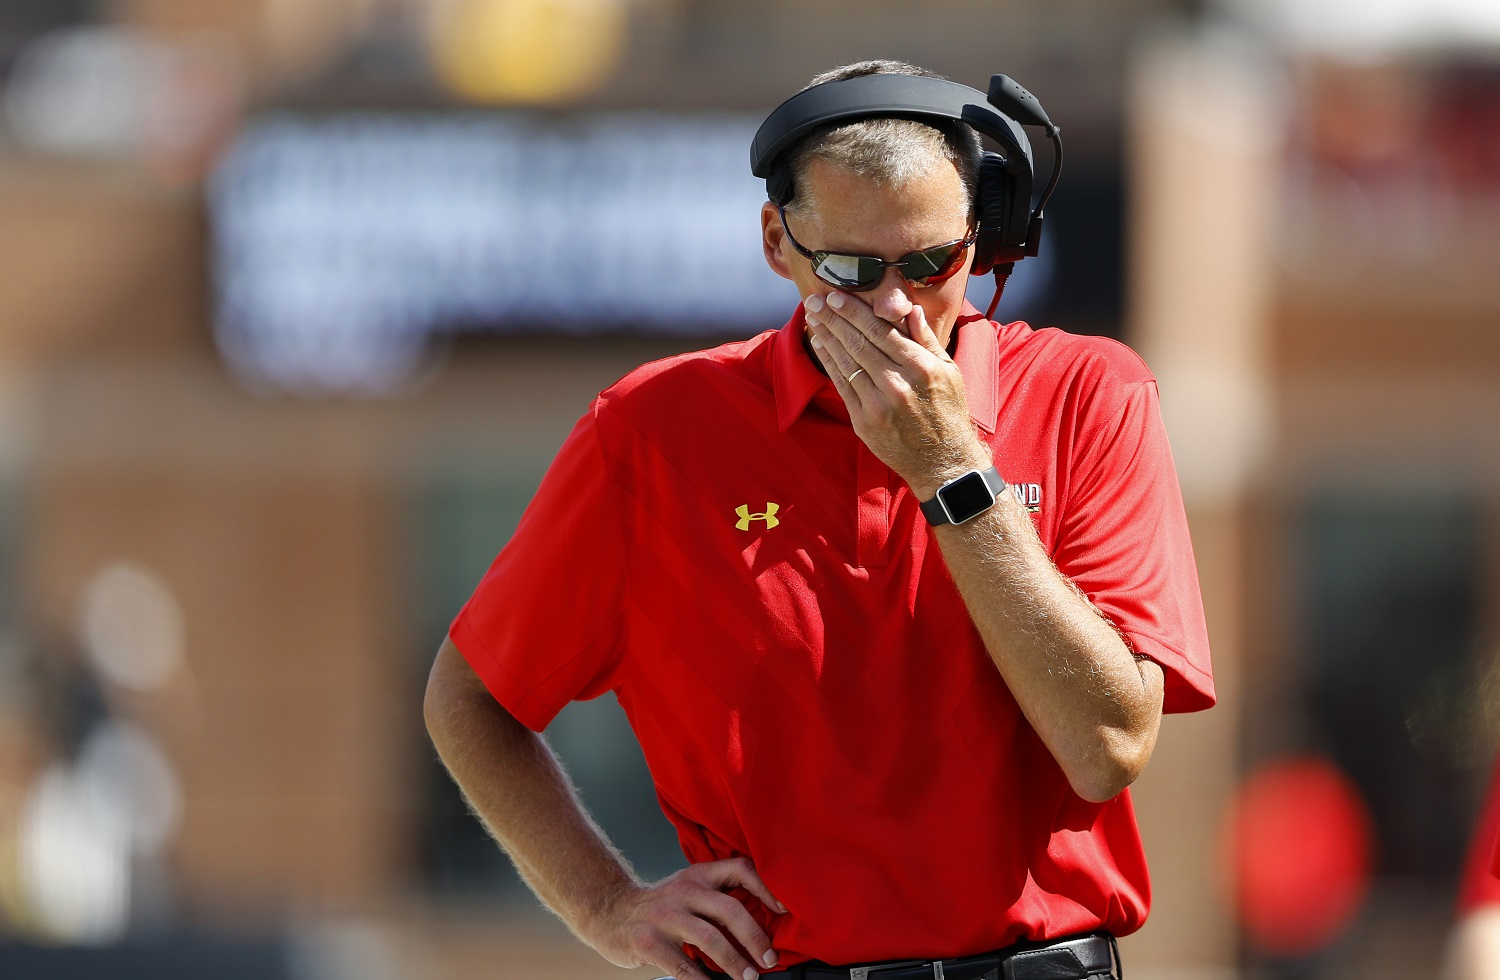 Fired Maryland head coach releases statement following dismissal